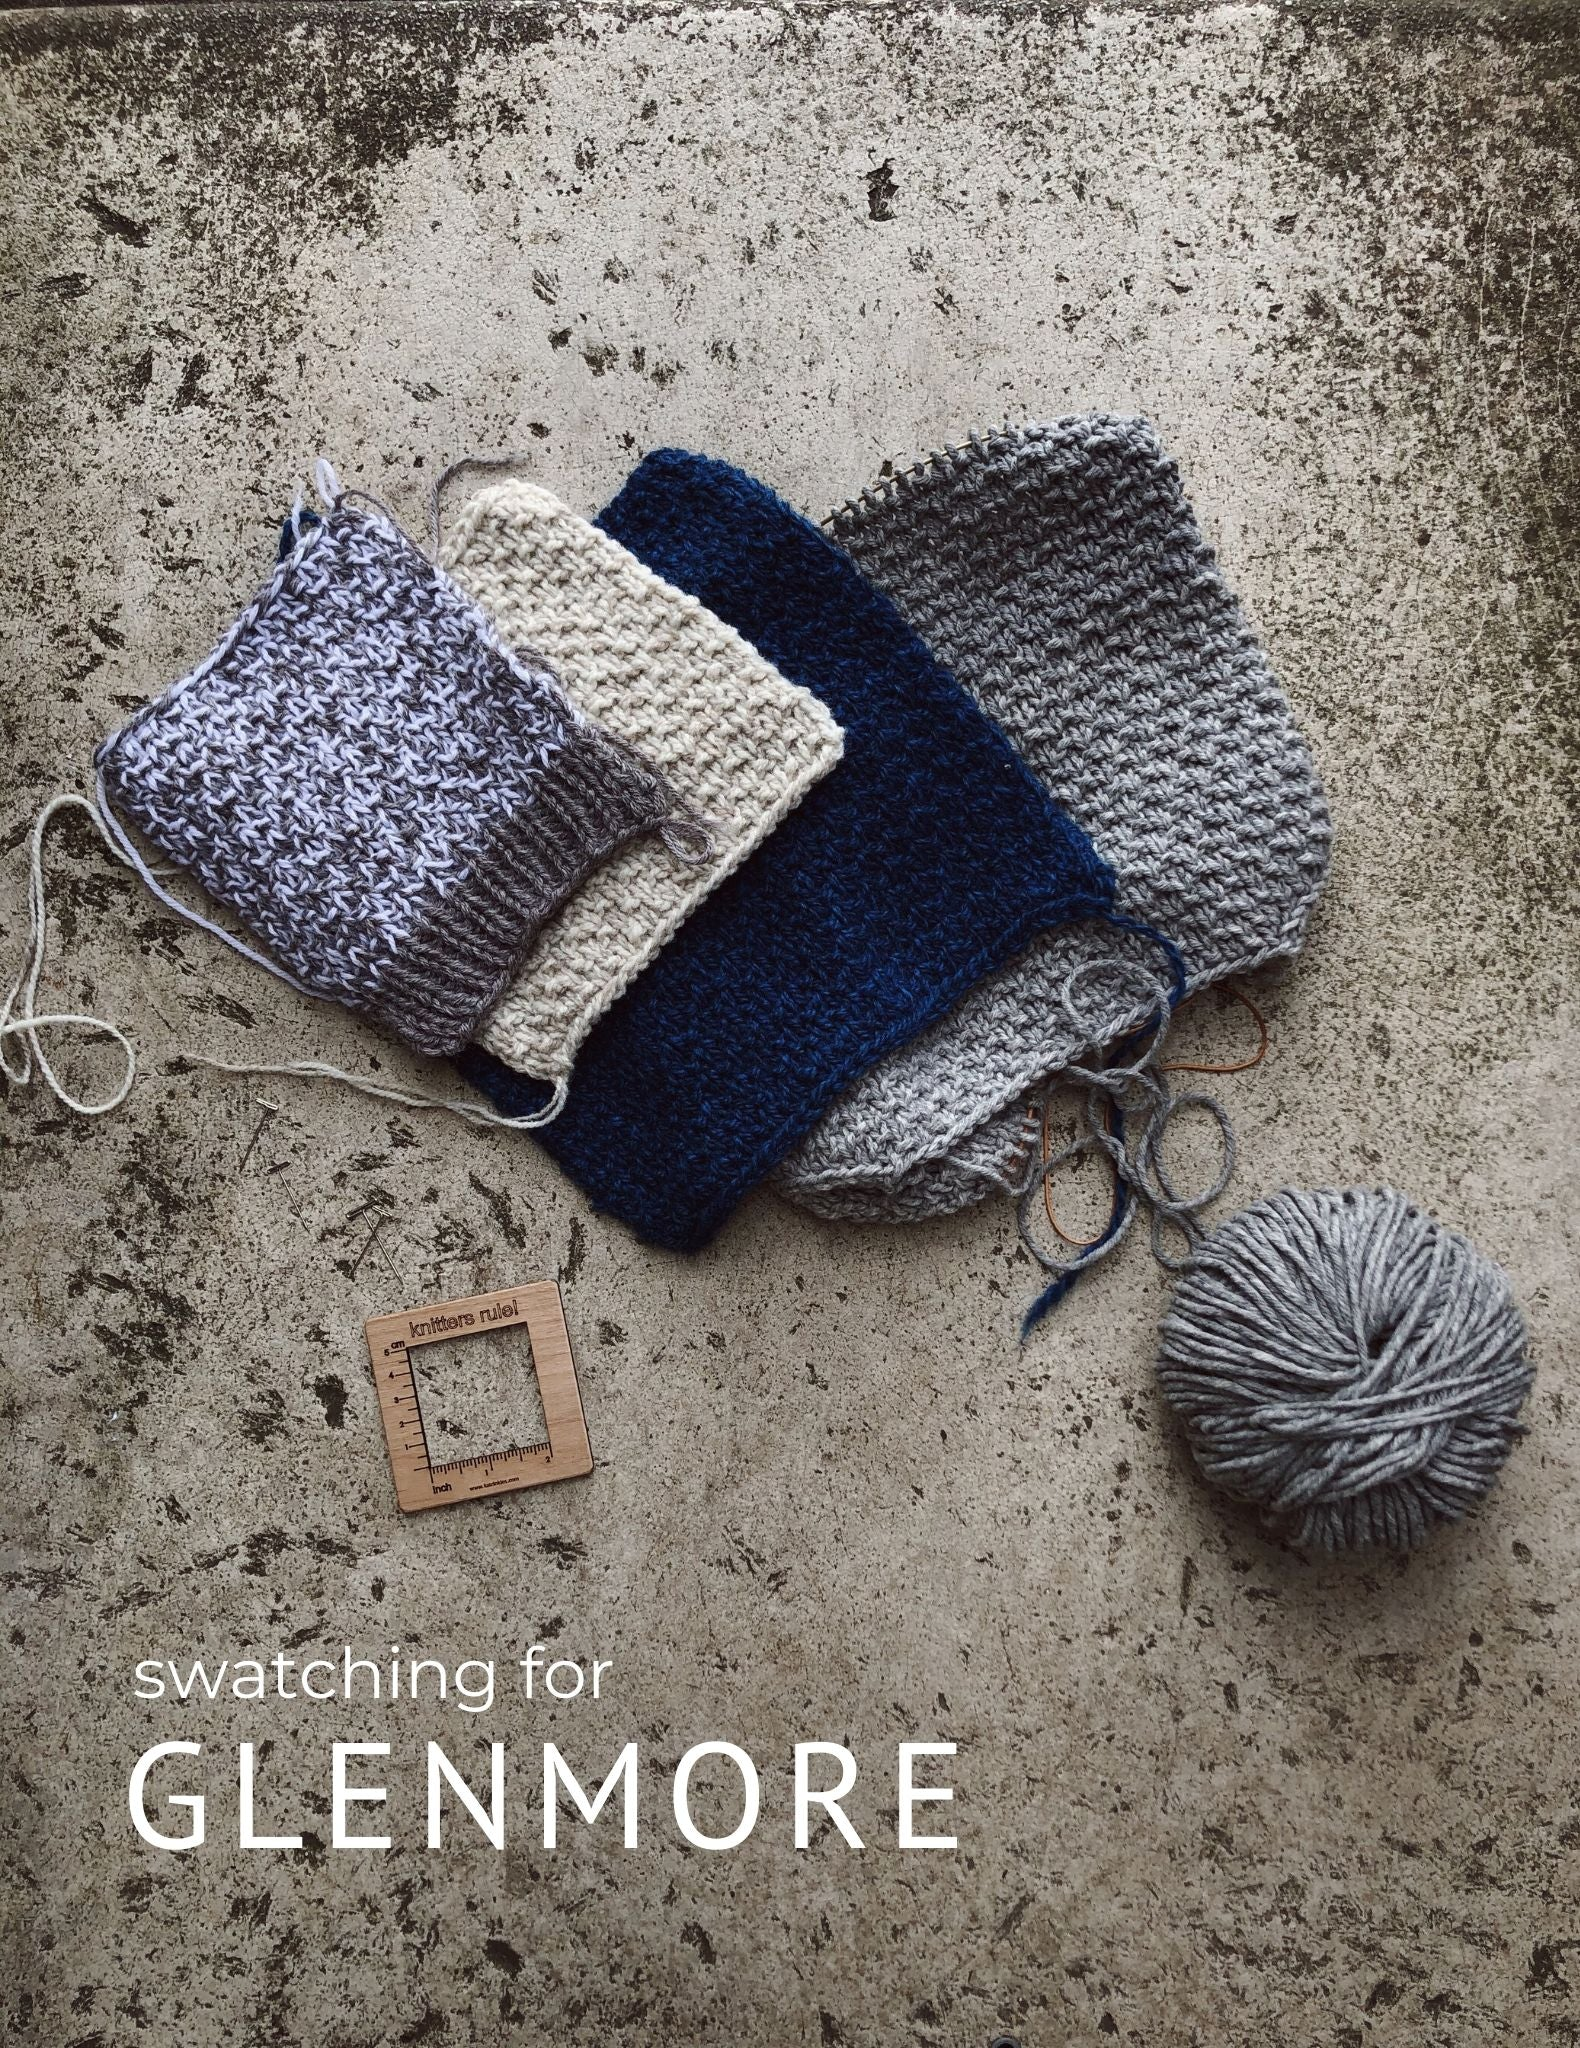 Swatching for Glenmore